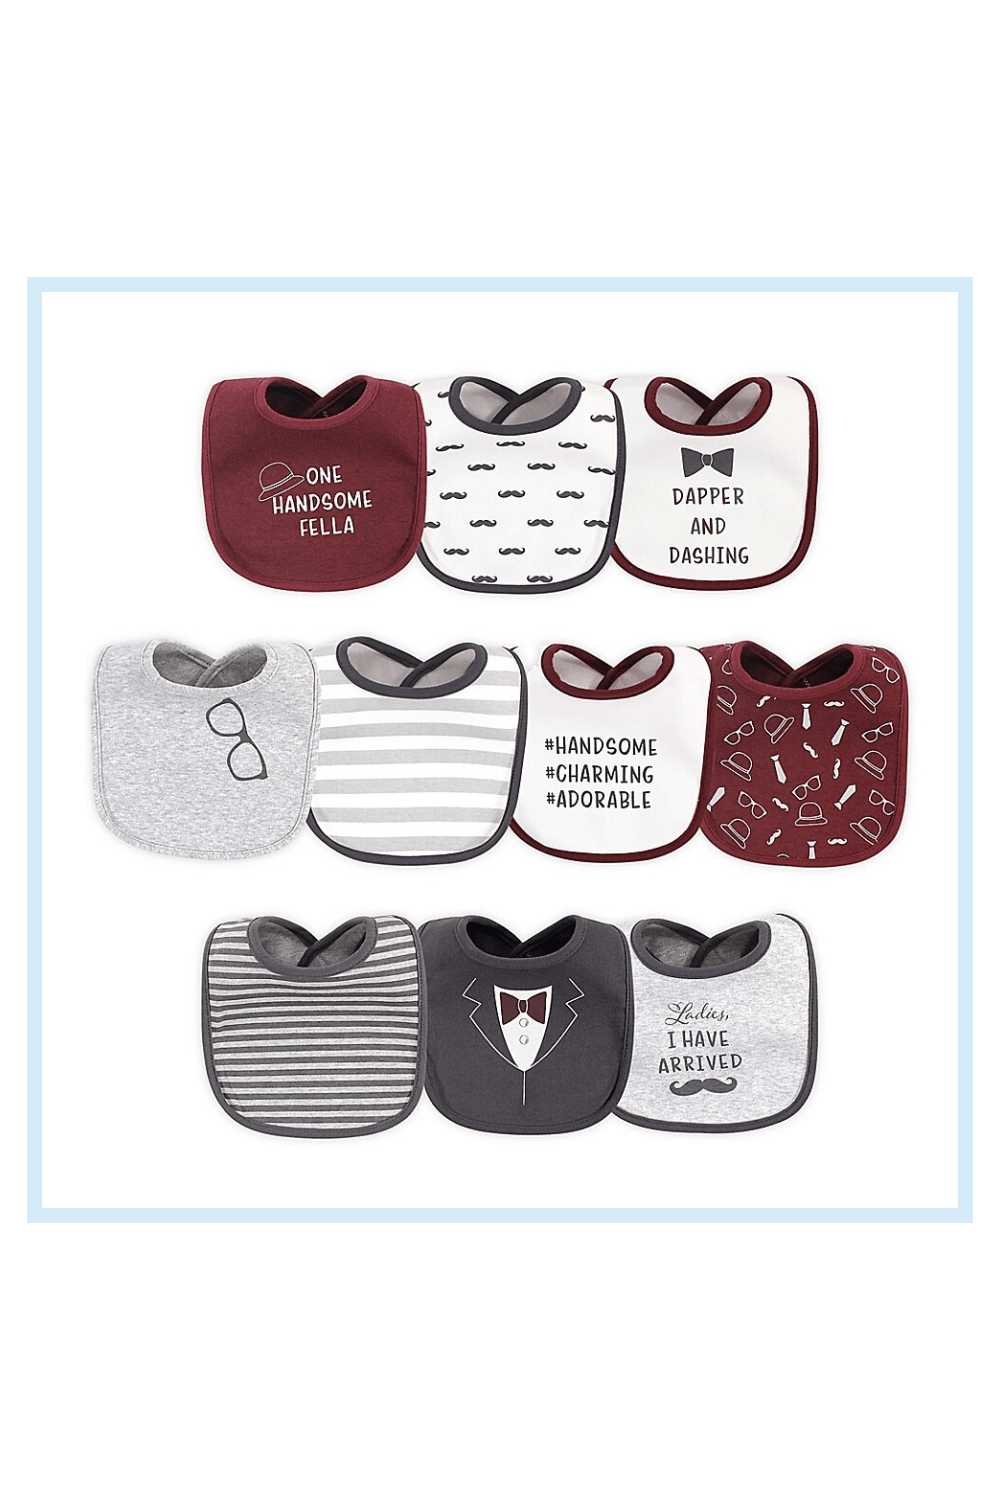 Hudson Baby 10-Pack I Have Arrived Drooler Bibs In Red/white Blue - Hudson Baby Drooler Bibs will keep your little one looking cute and clean at dinner time. Each soft bib is made of absorbent fabric that will stop drips, drools, and spills. With 10 cute designs to choose from, you'll be ready for any occasion.